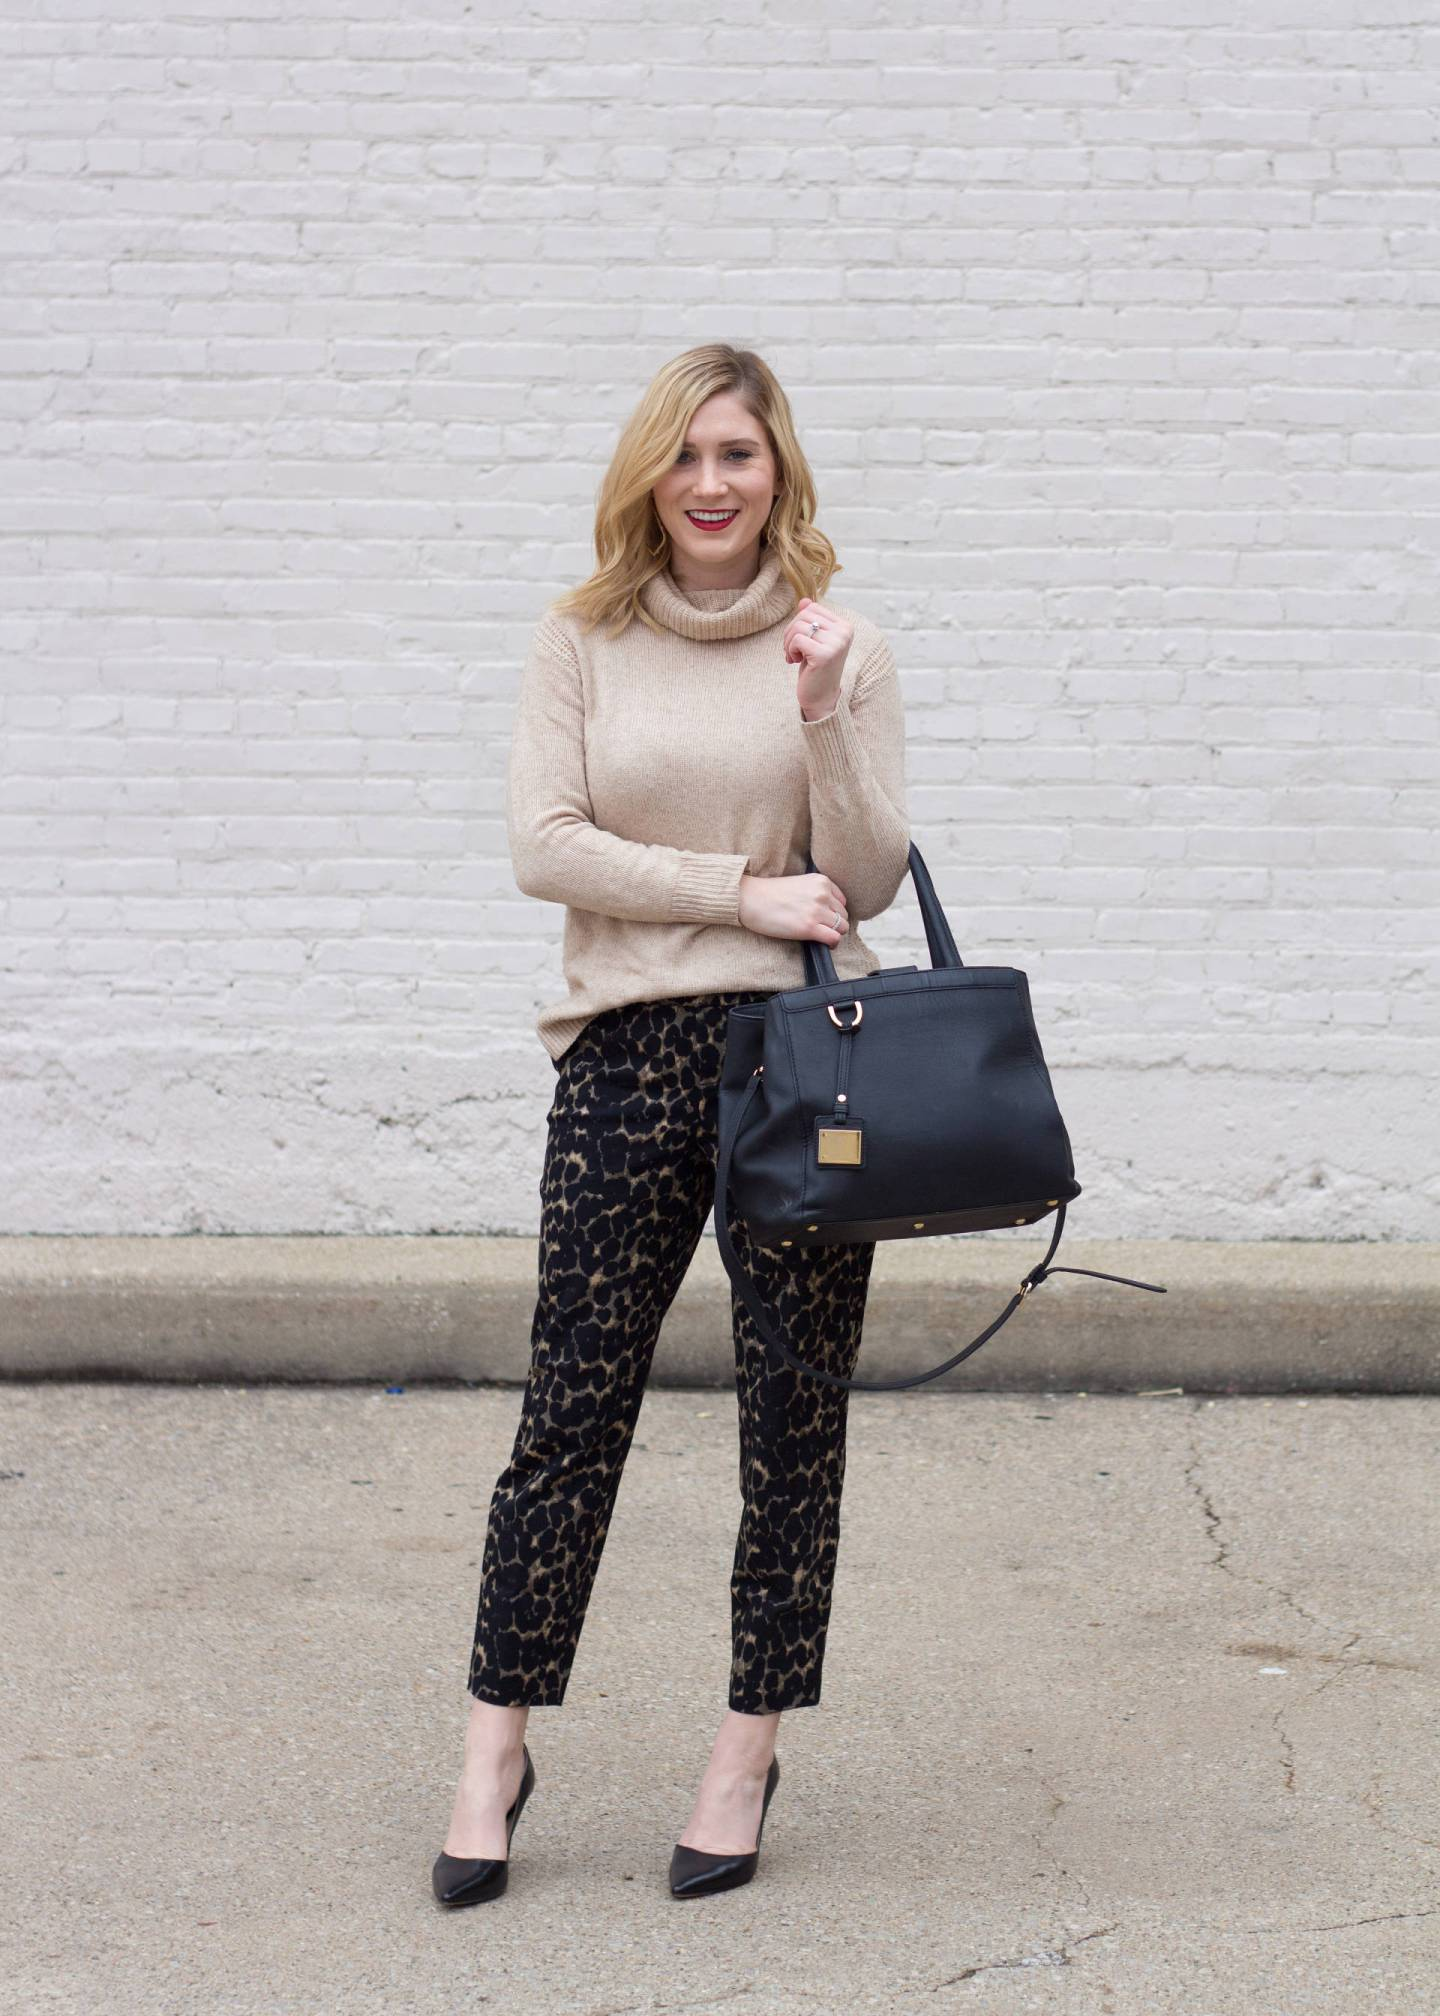 Leopard Trousers for Work and Play